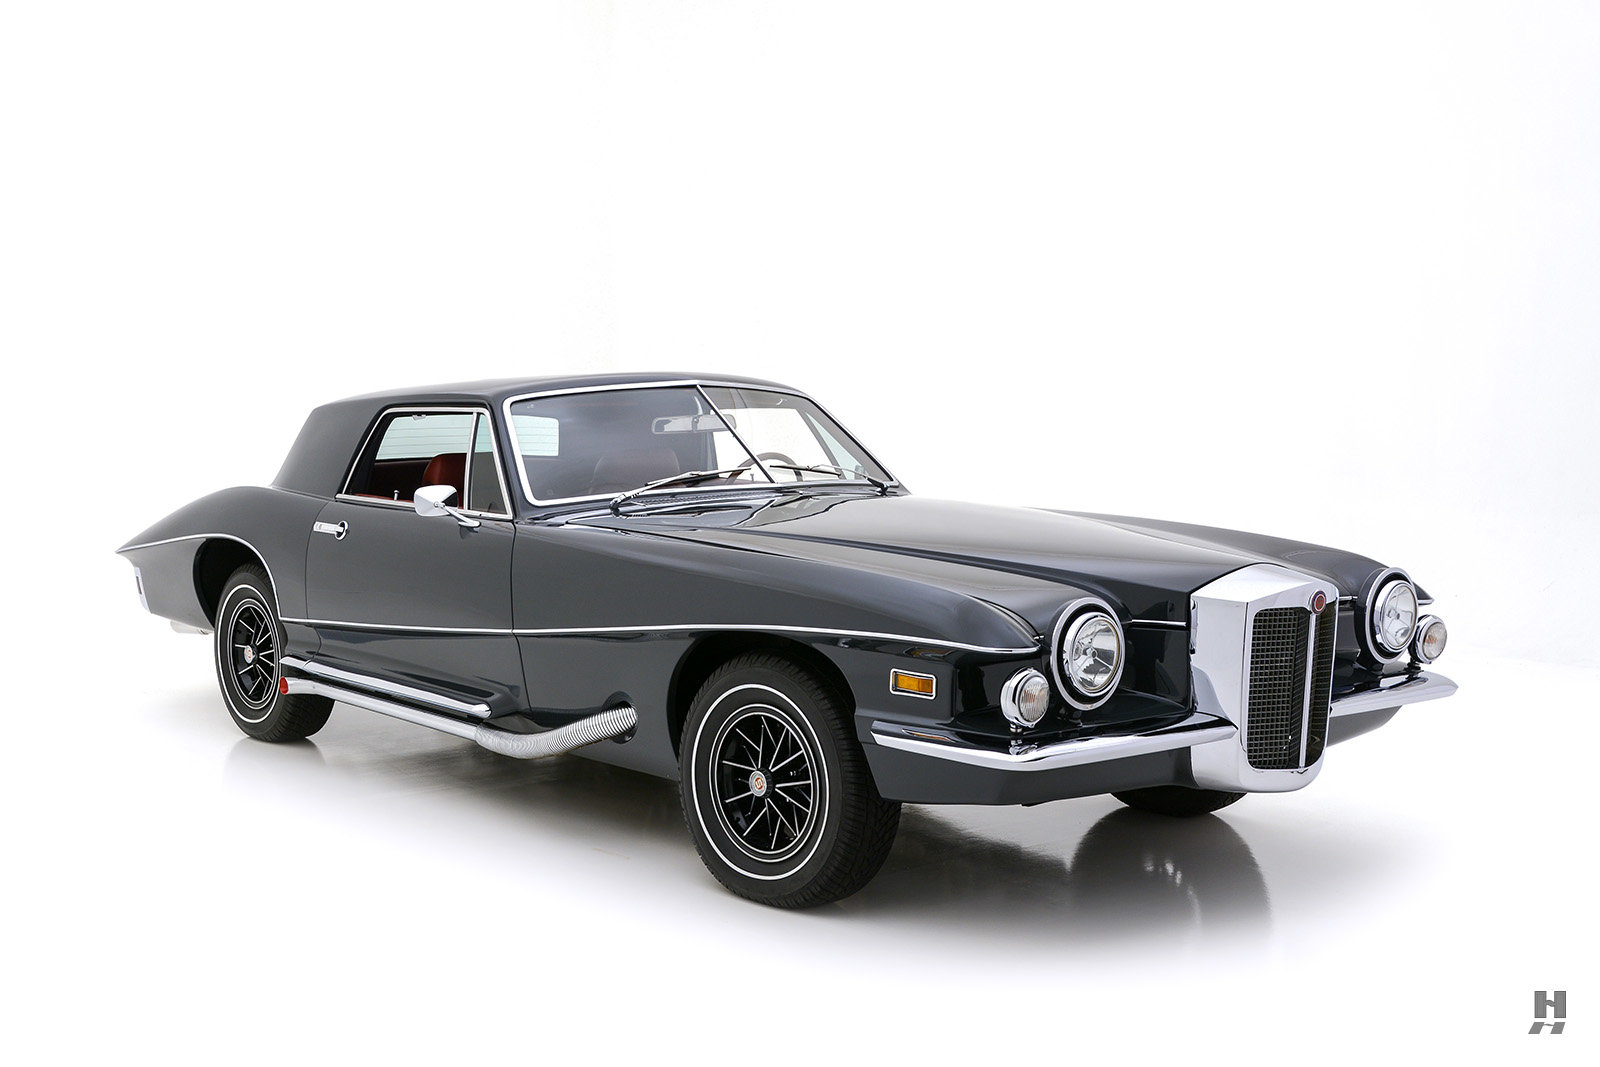 1971 STUTZ BLACKHAWK SERIES 1 COUPE For Sale (picture 2 of 6)